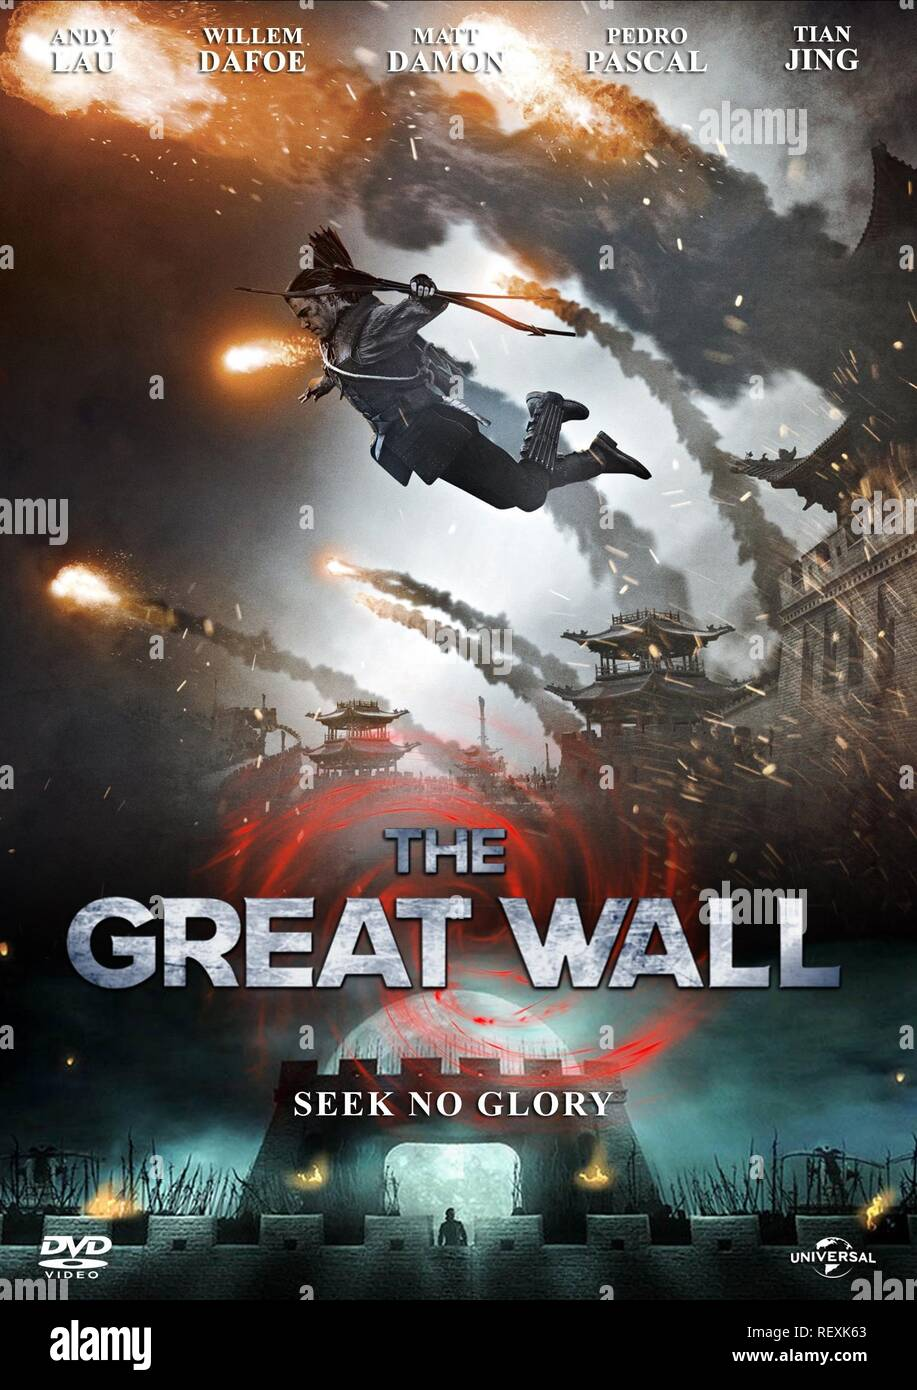 MOVIE POSTER THE GREAT WALL (2016) - Stock Image